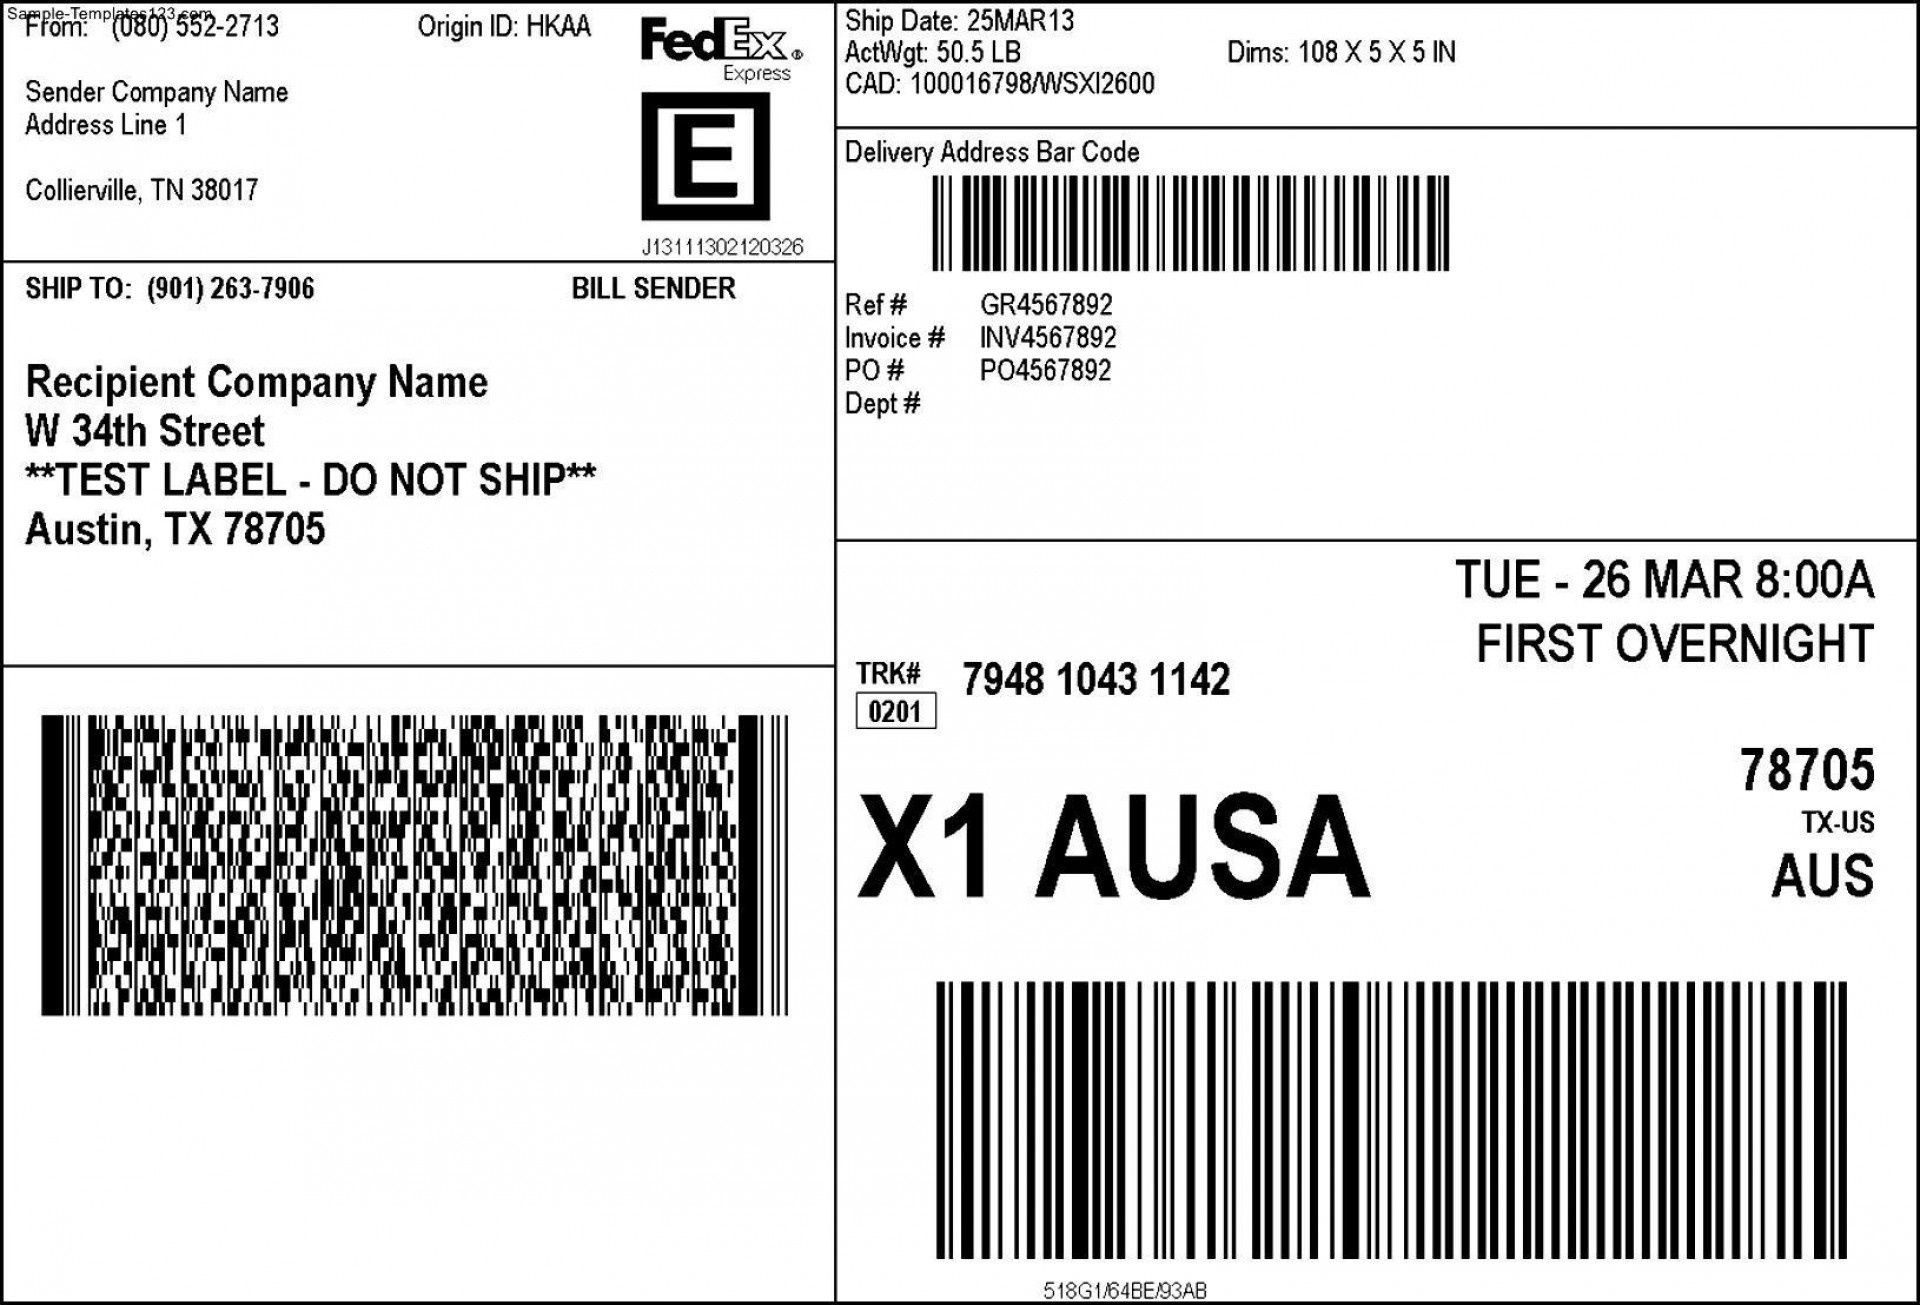 004 Stunning Shipping Label Template Free Word High Resolution 1920